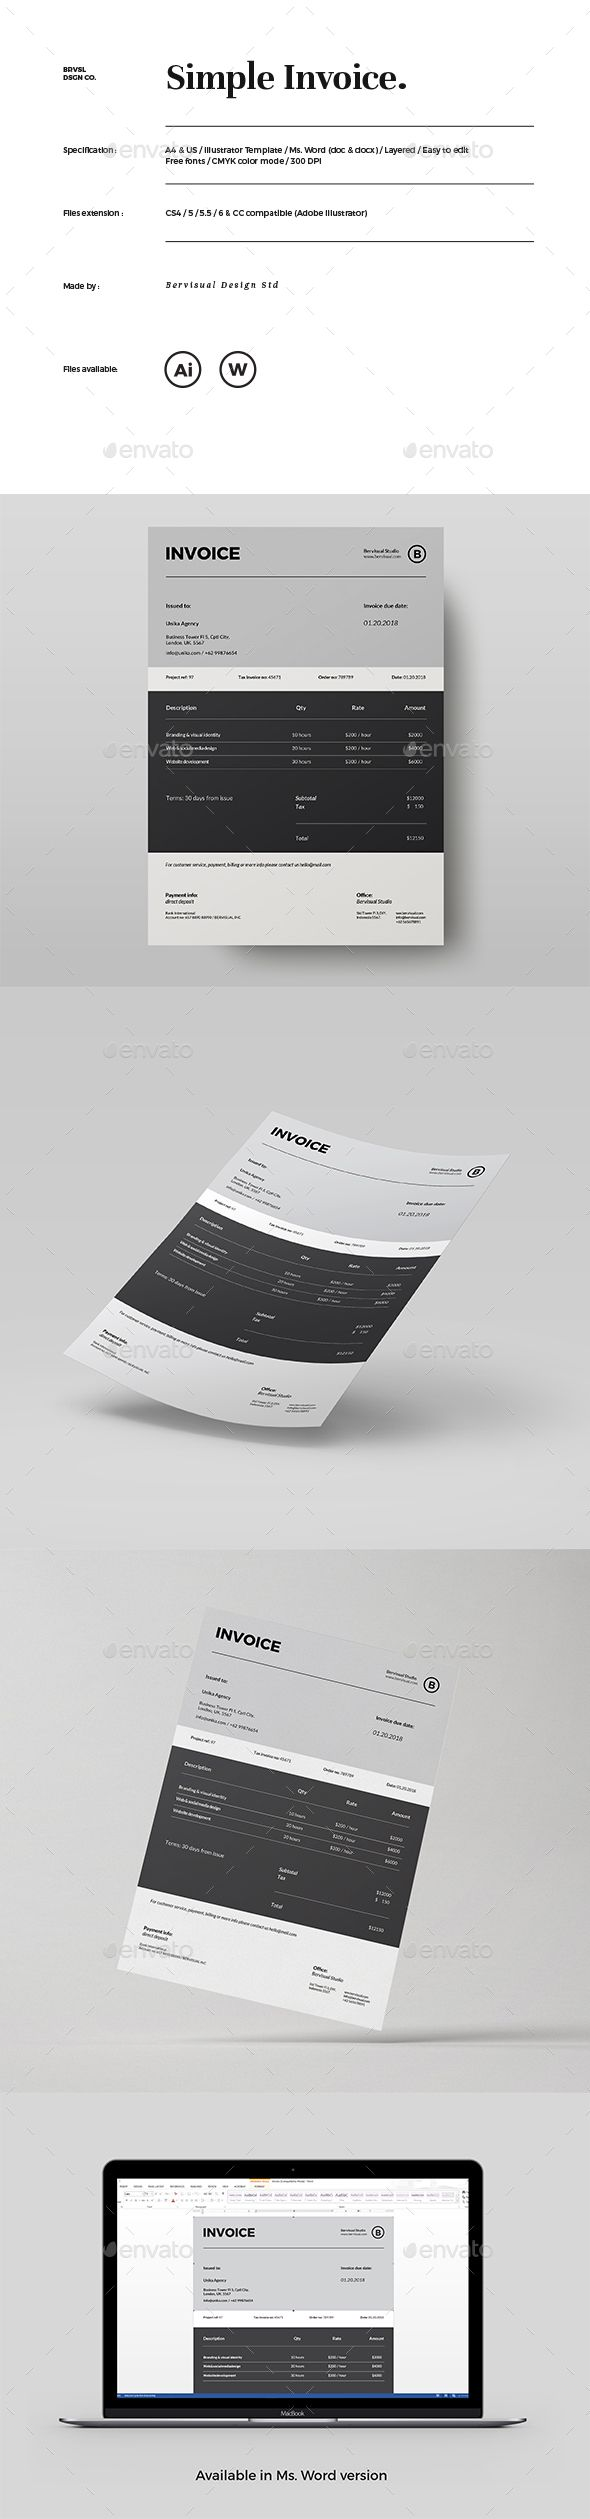 Invoice template designed with a unique, minimal and modern layout for personal or corporate project. Available in 2 sizes, A4 and